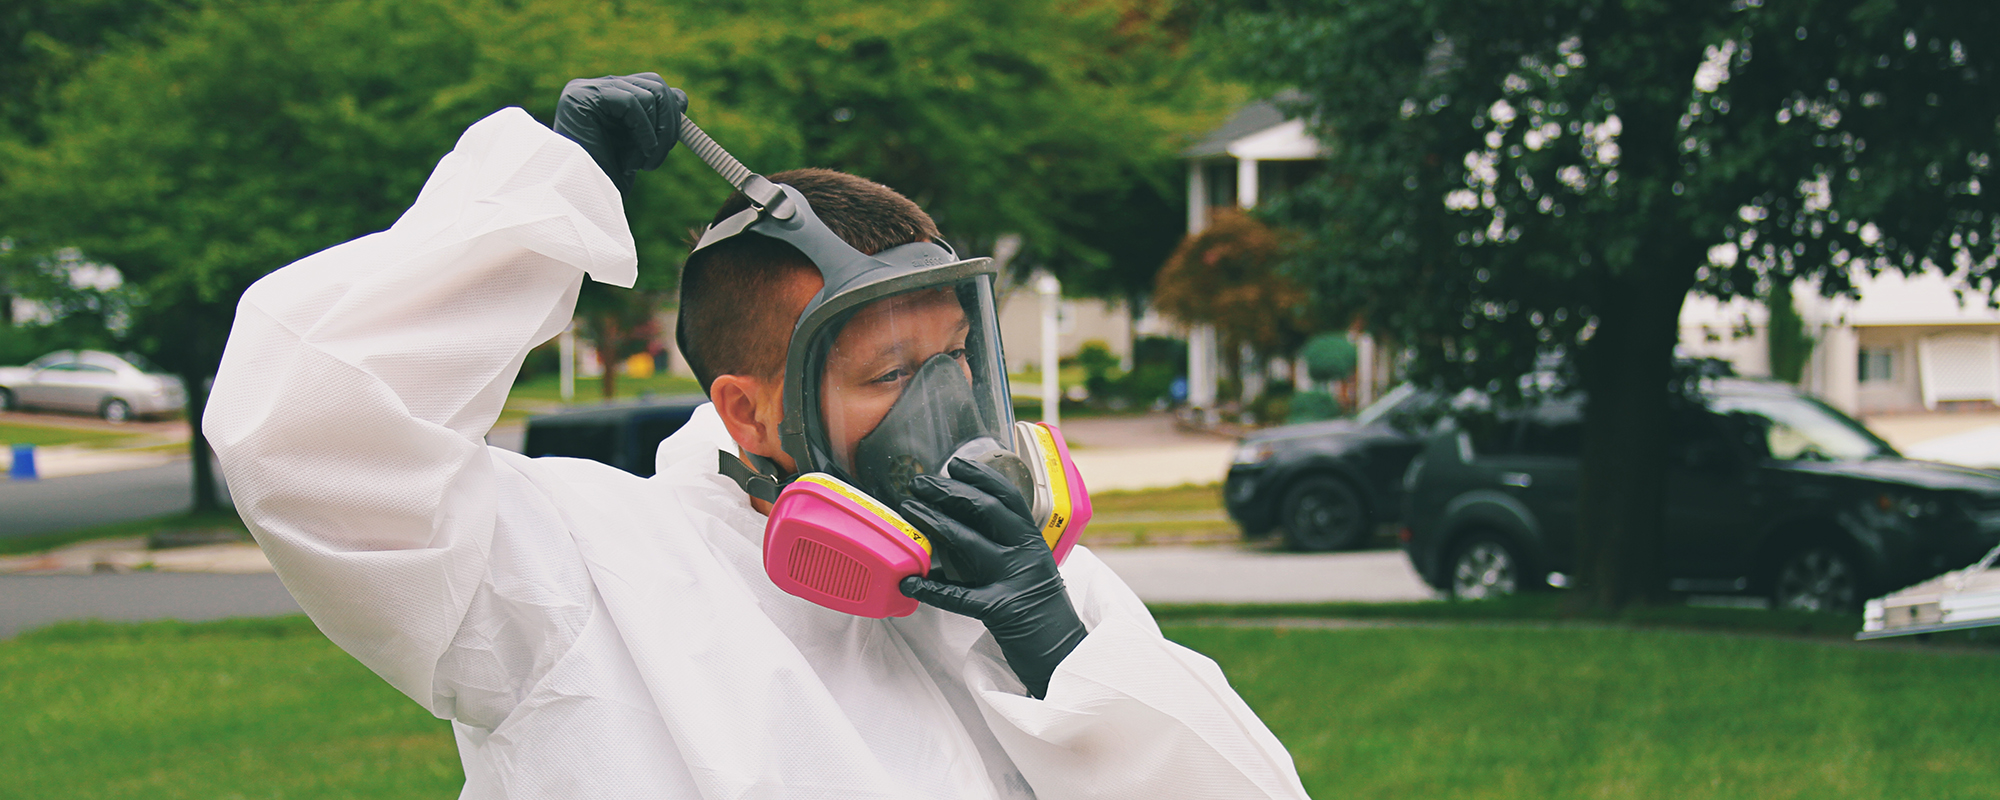 mold cleanup technician mt laurel nj 08054